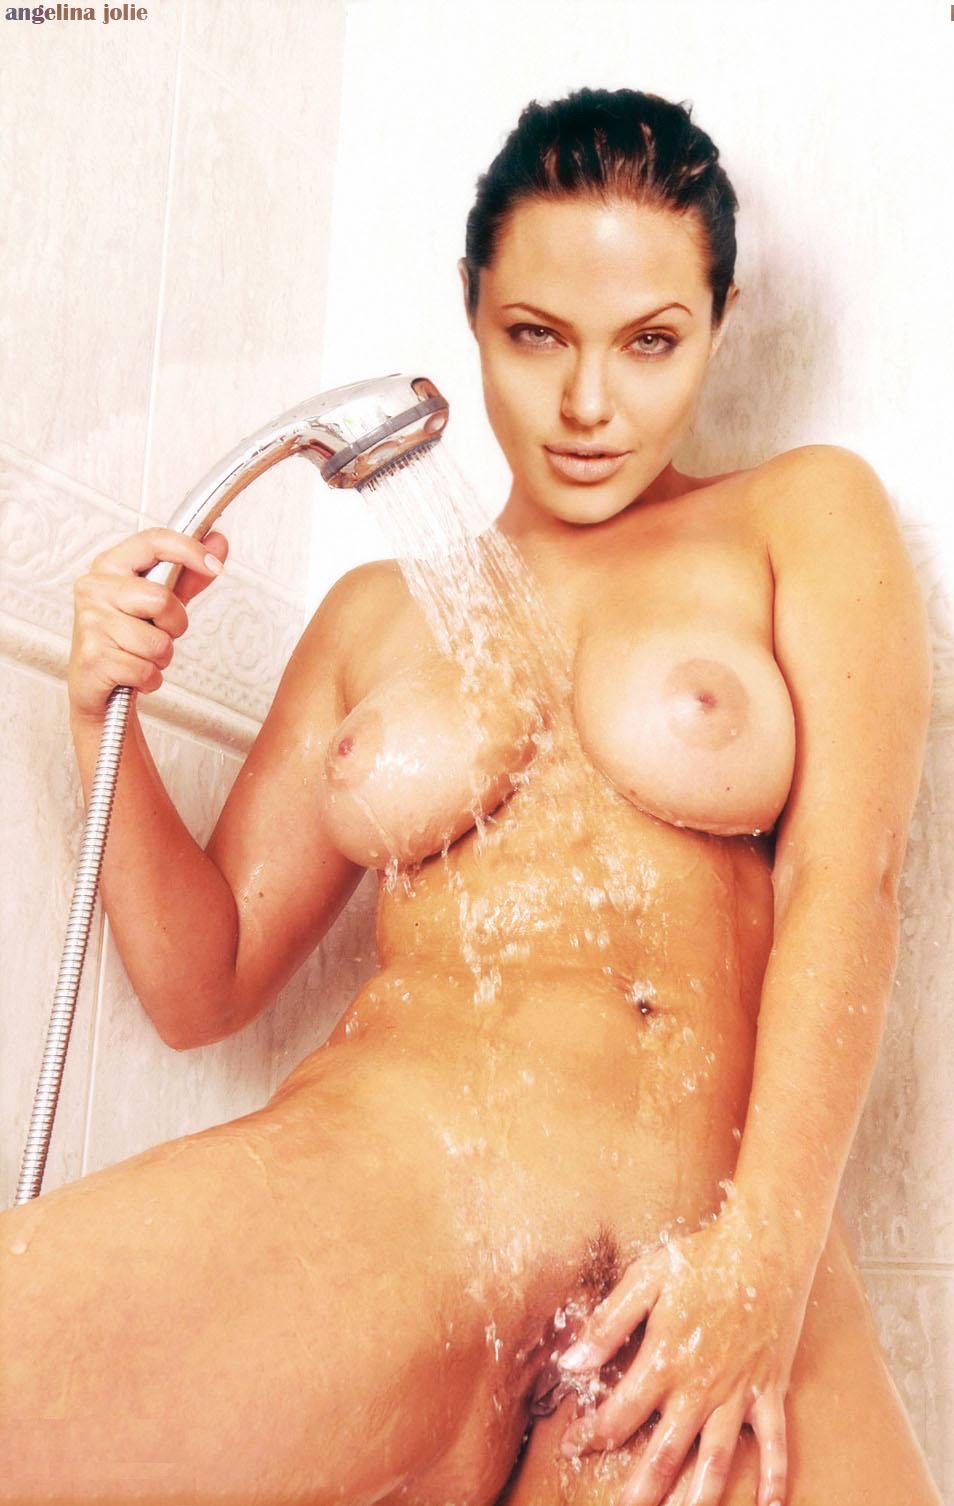 angelina-jolie-fake-xxx-nude-image-british-wife-solo